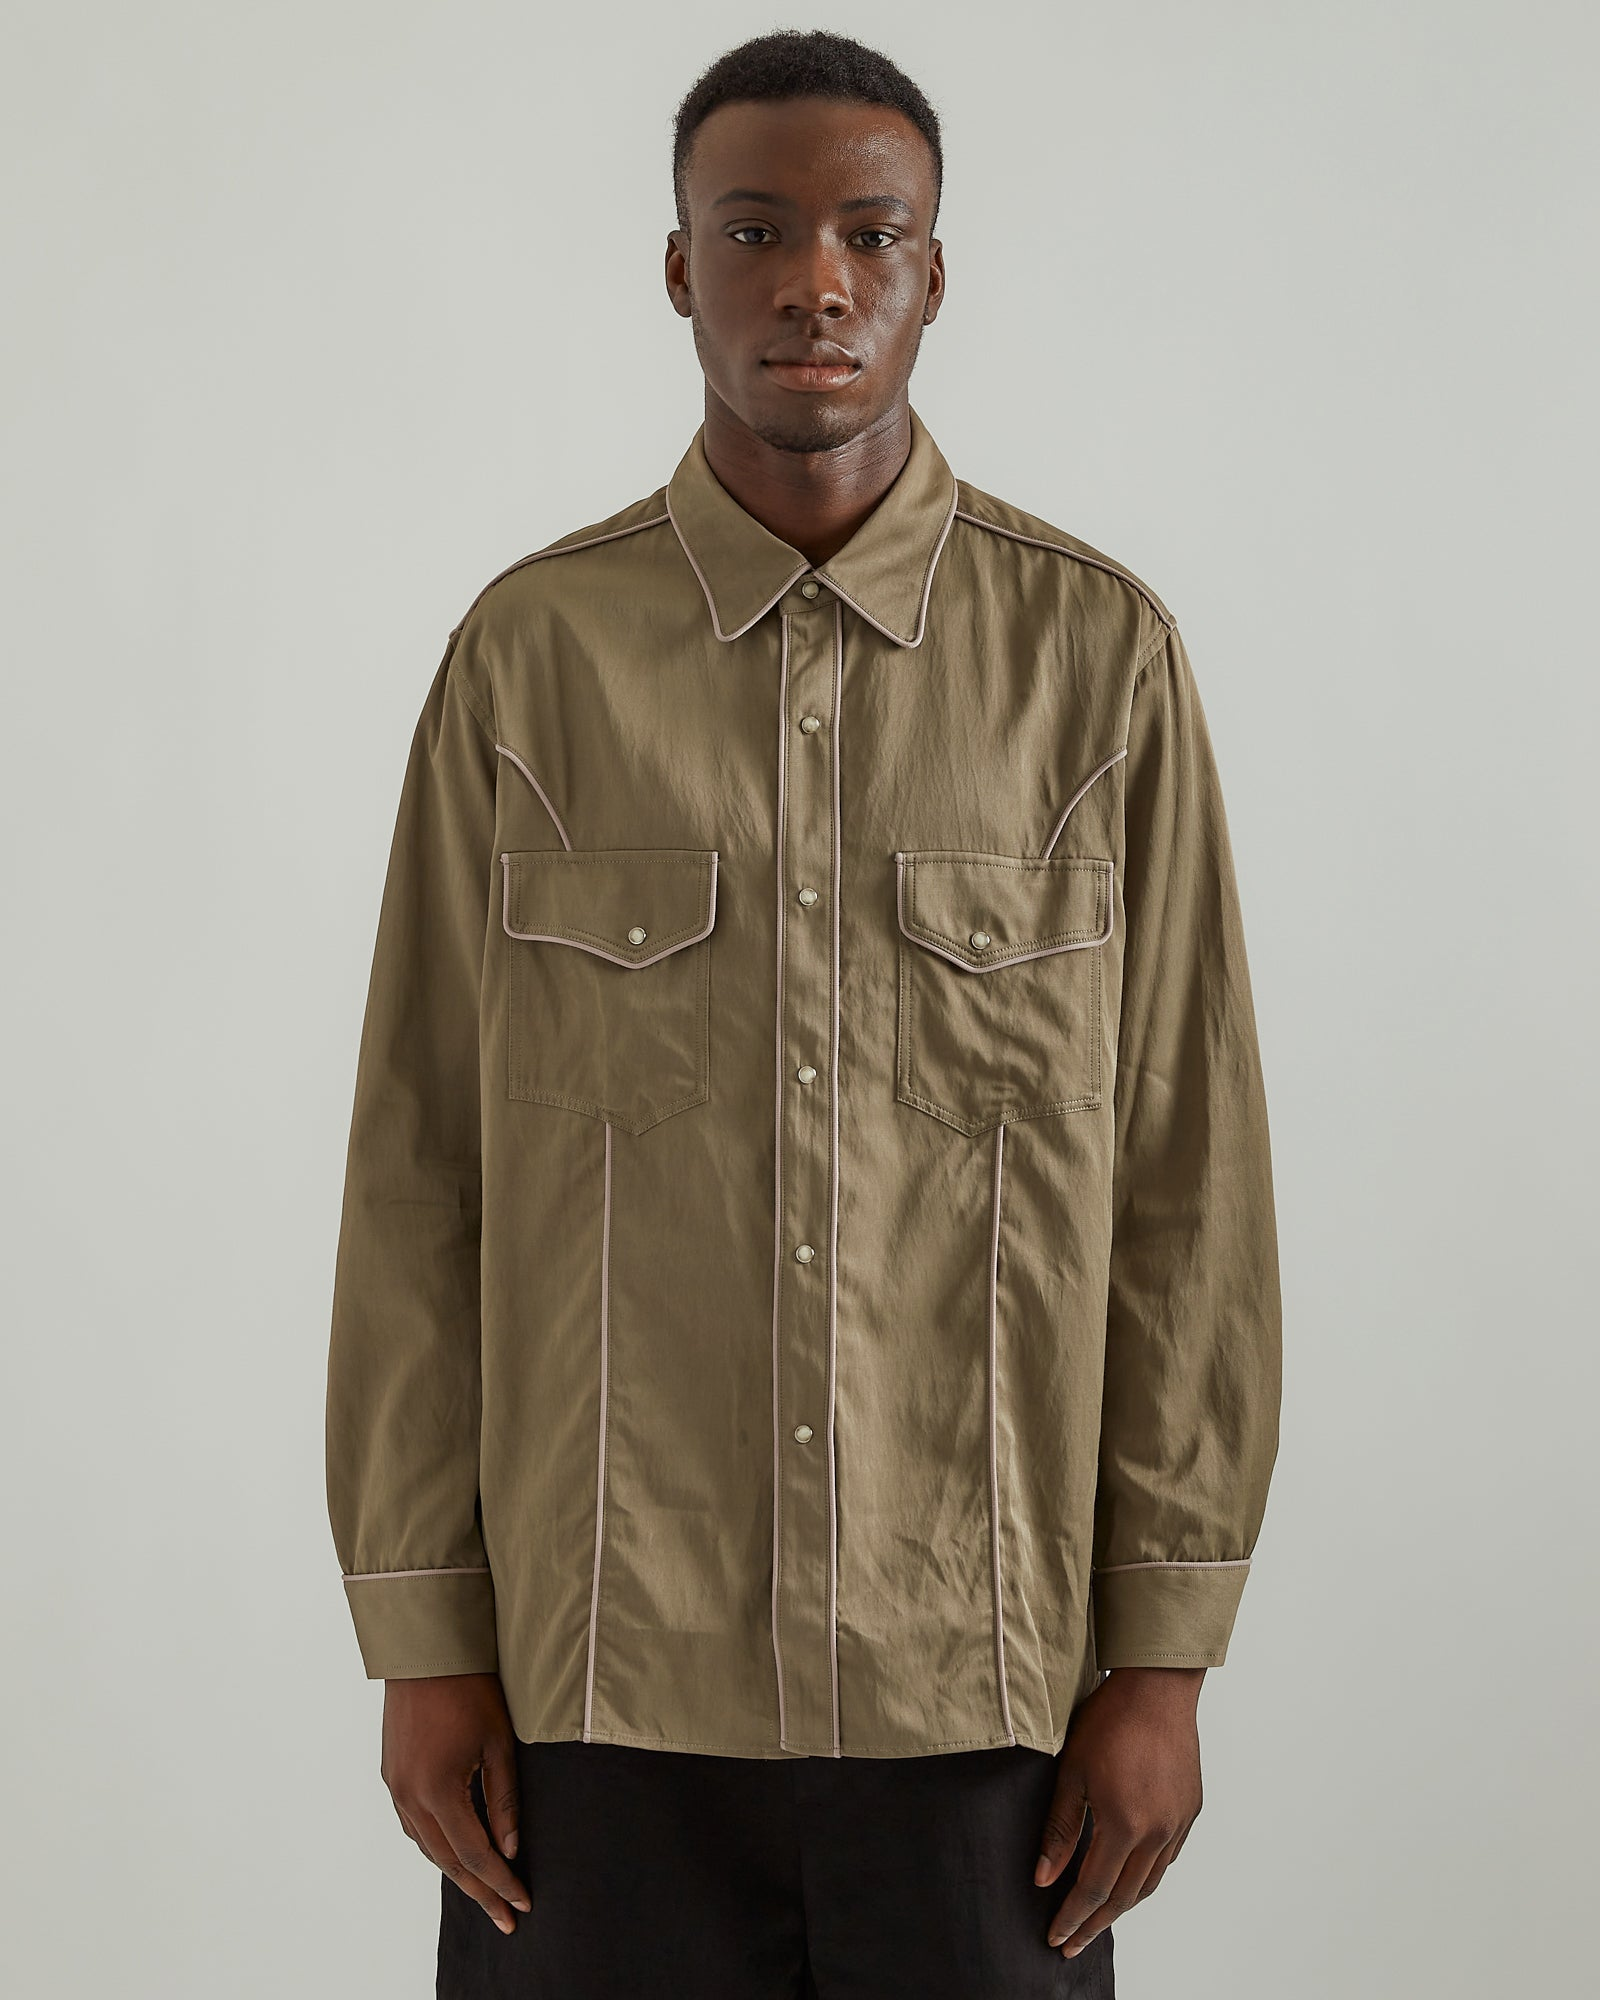 Western Shirt in Khaki